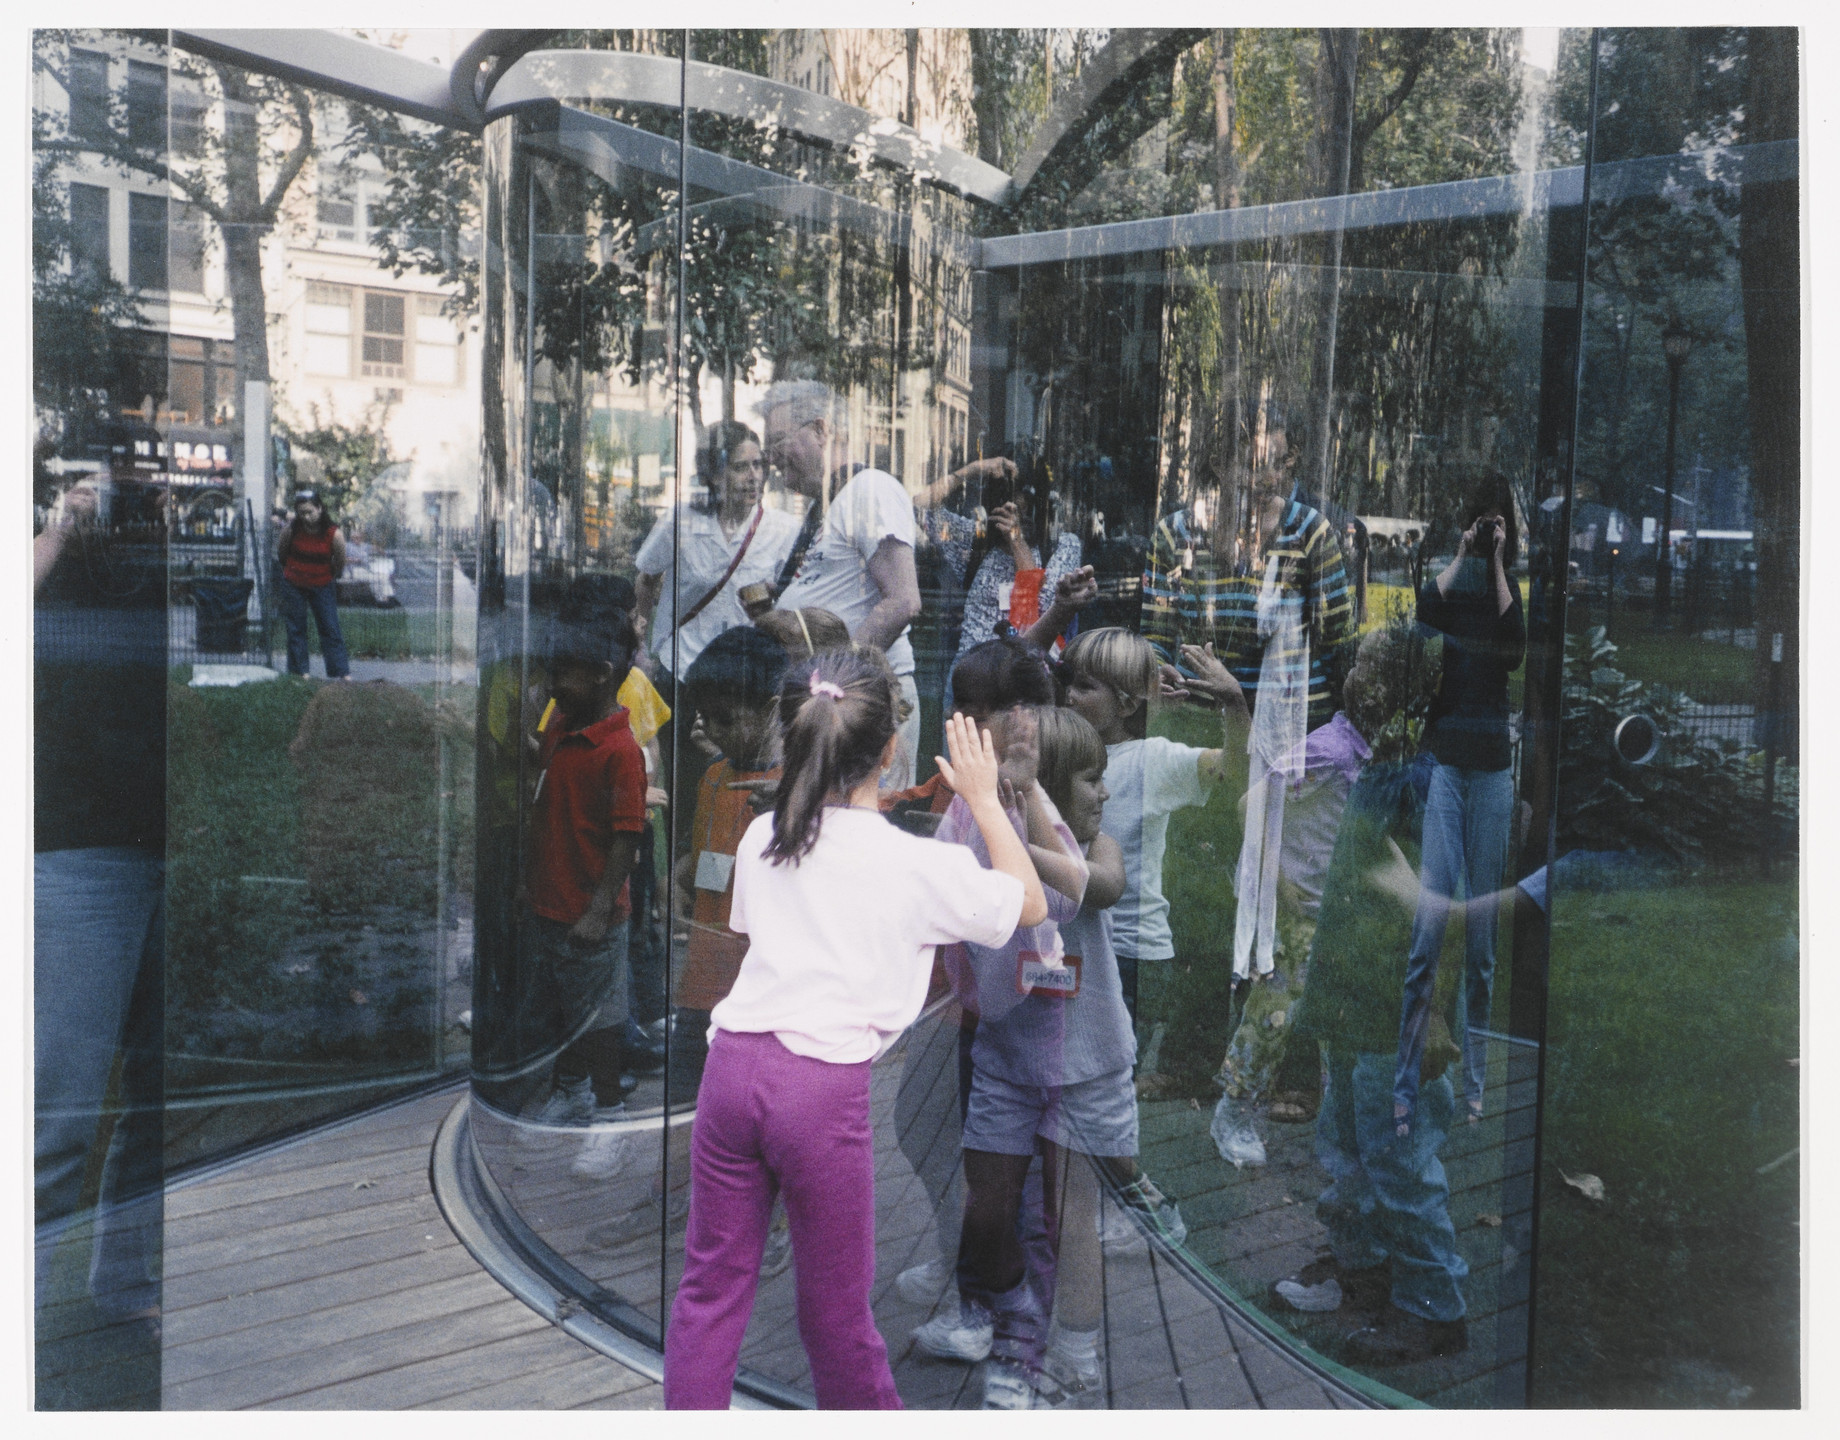 Dan Graham. Fun for Kids at my Work in a Park in Manhattan (for Parkett no. 68). 2003